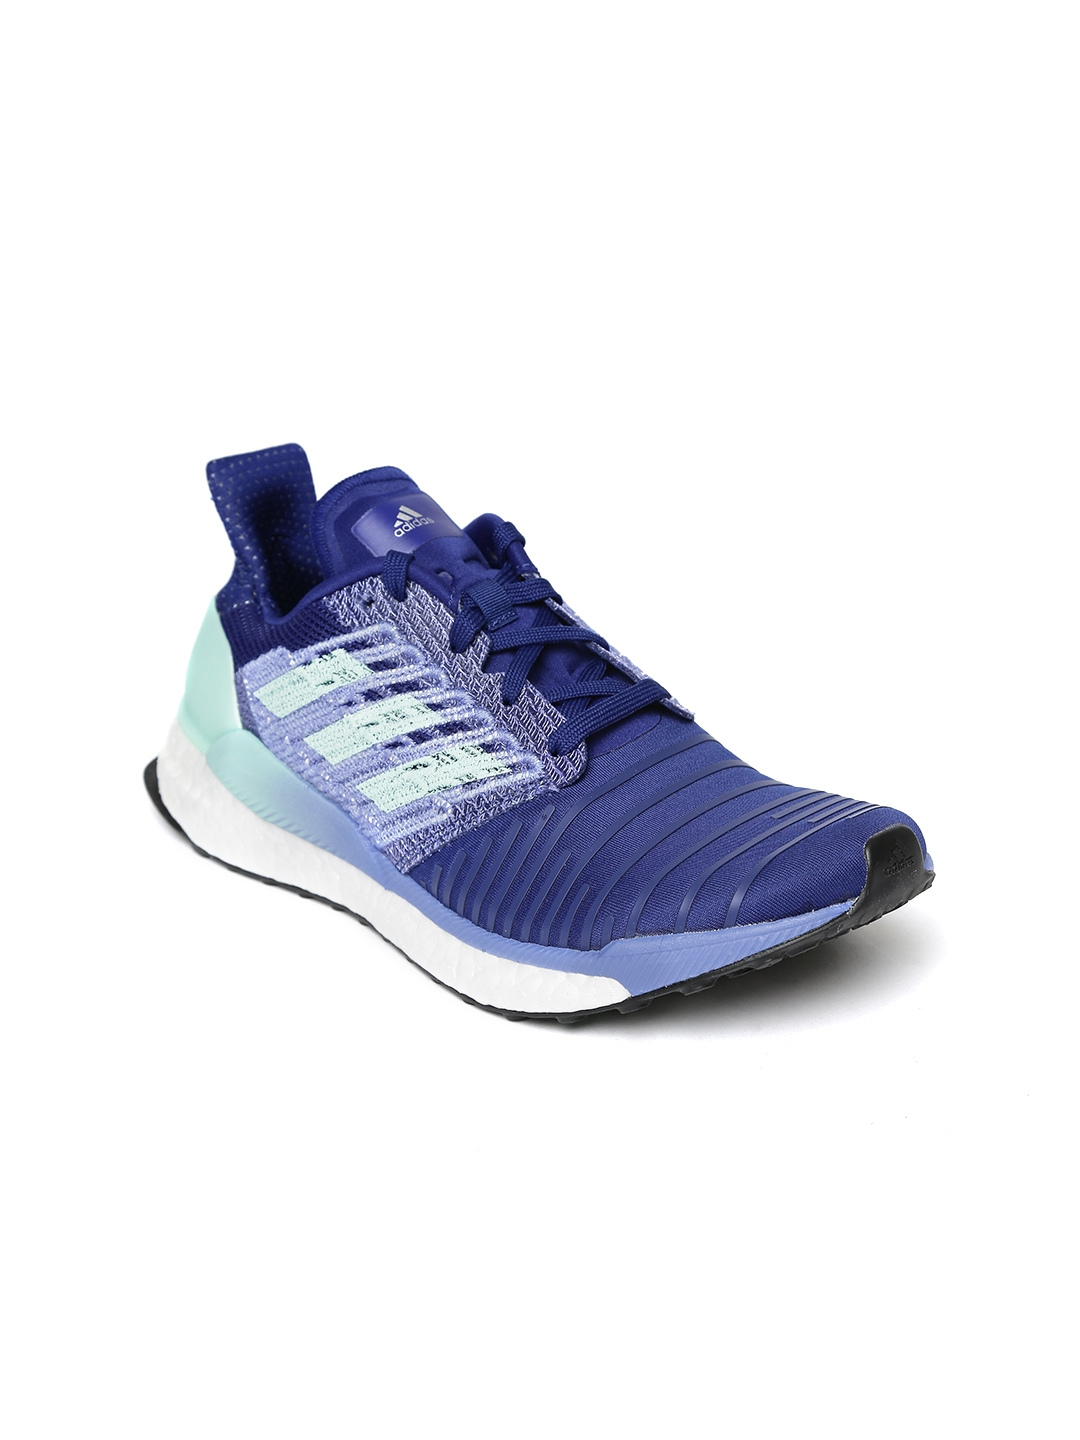 1320f2d2d75 Buy ADIDAS Women Blue Solar Boost Running Shoes - Sports Shoes for ...